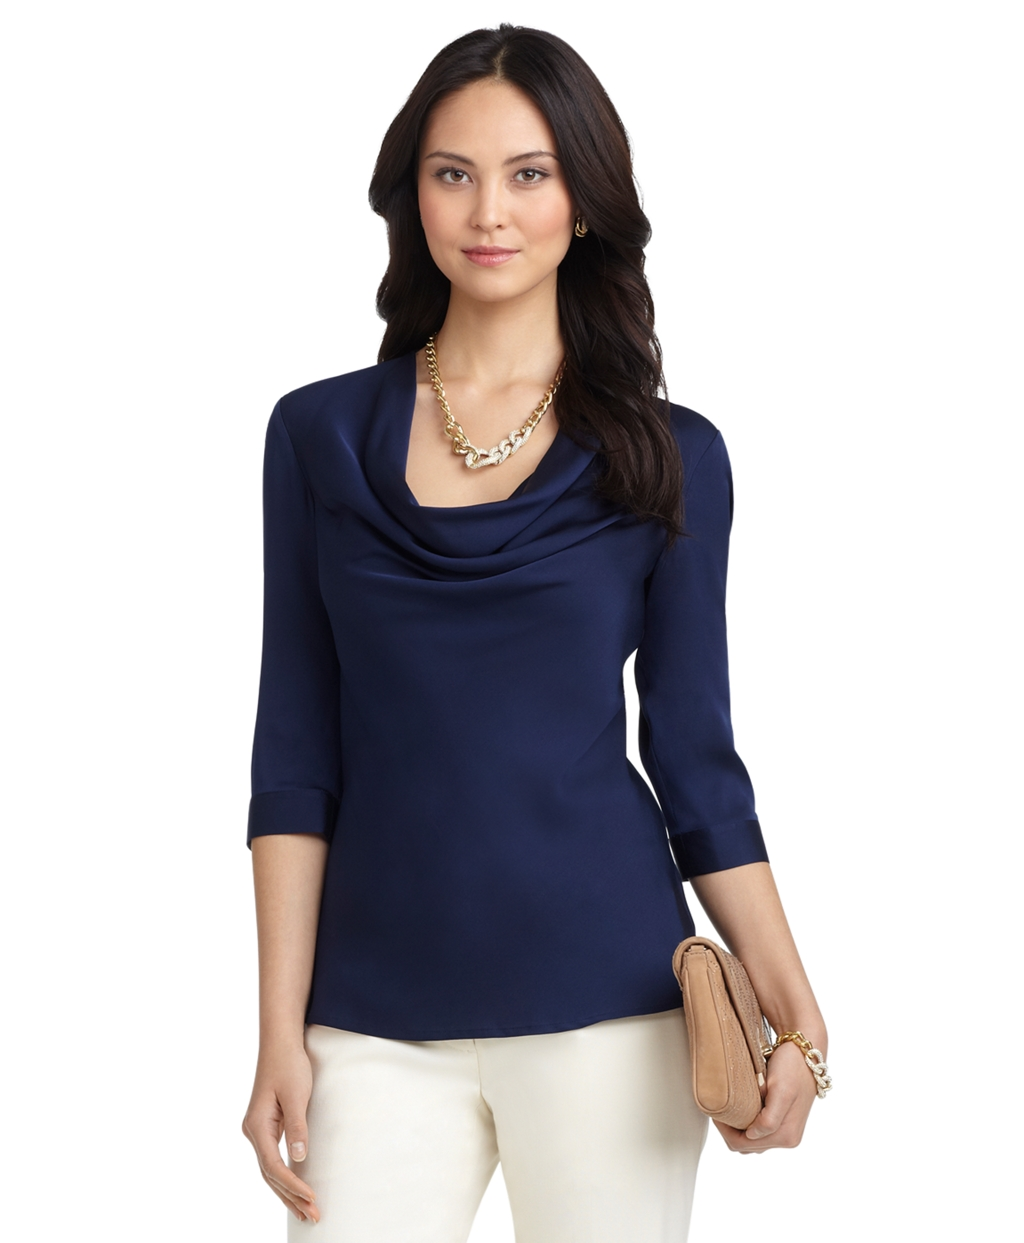 Cowl Neckline: Brooks Brothers Stretch Silk Cowl Neck Blouse In Blue